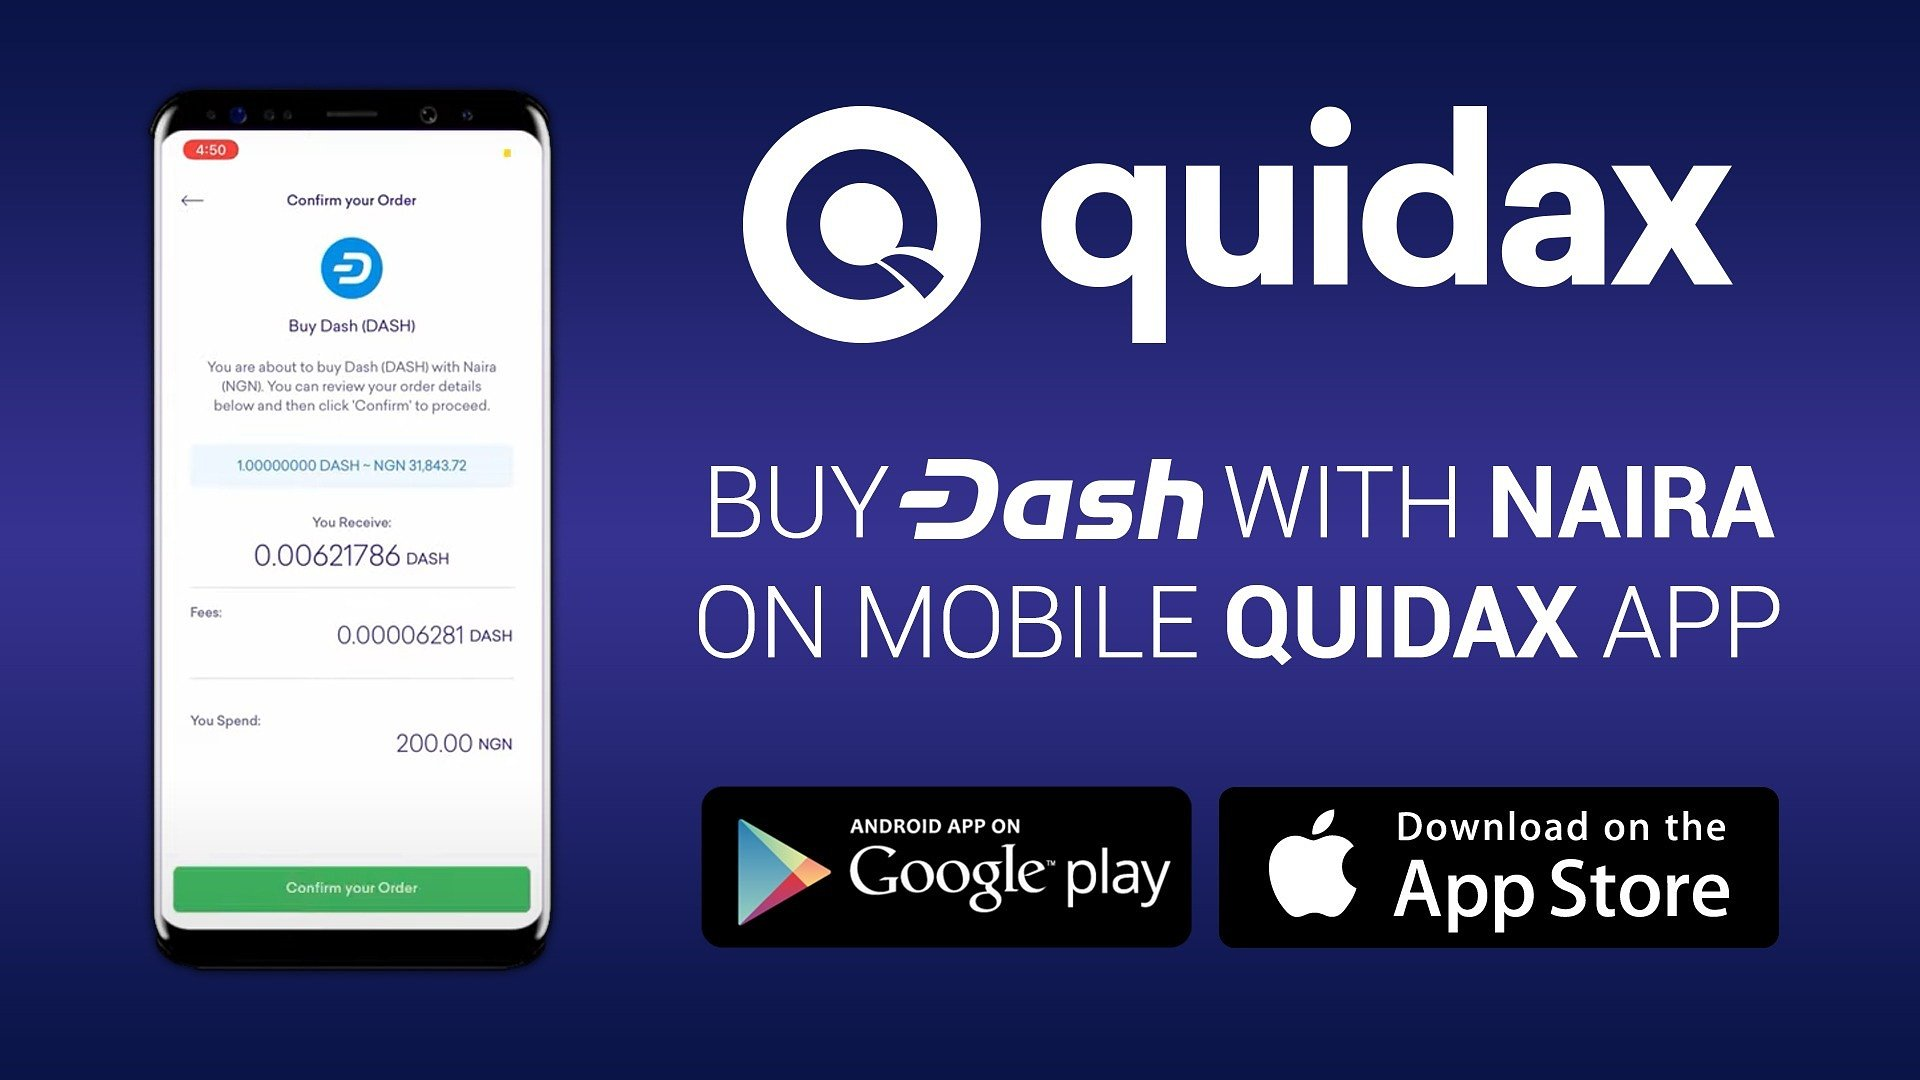 African Crypto Exchange Quidax has listed Dash for Faster and Cheaper Payments